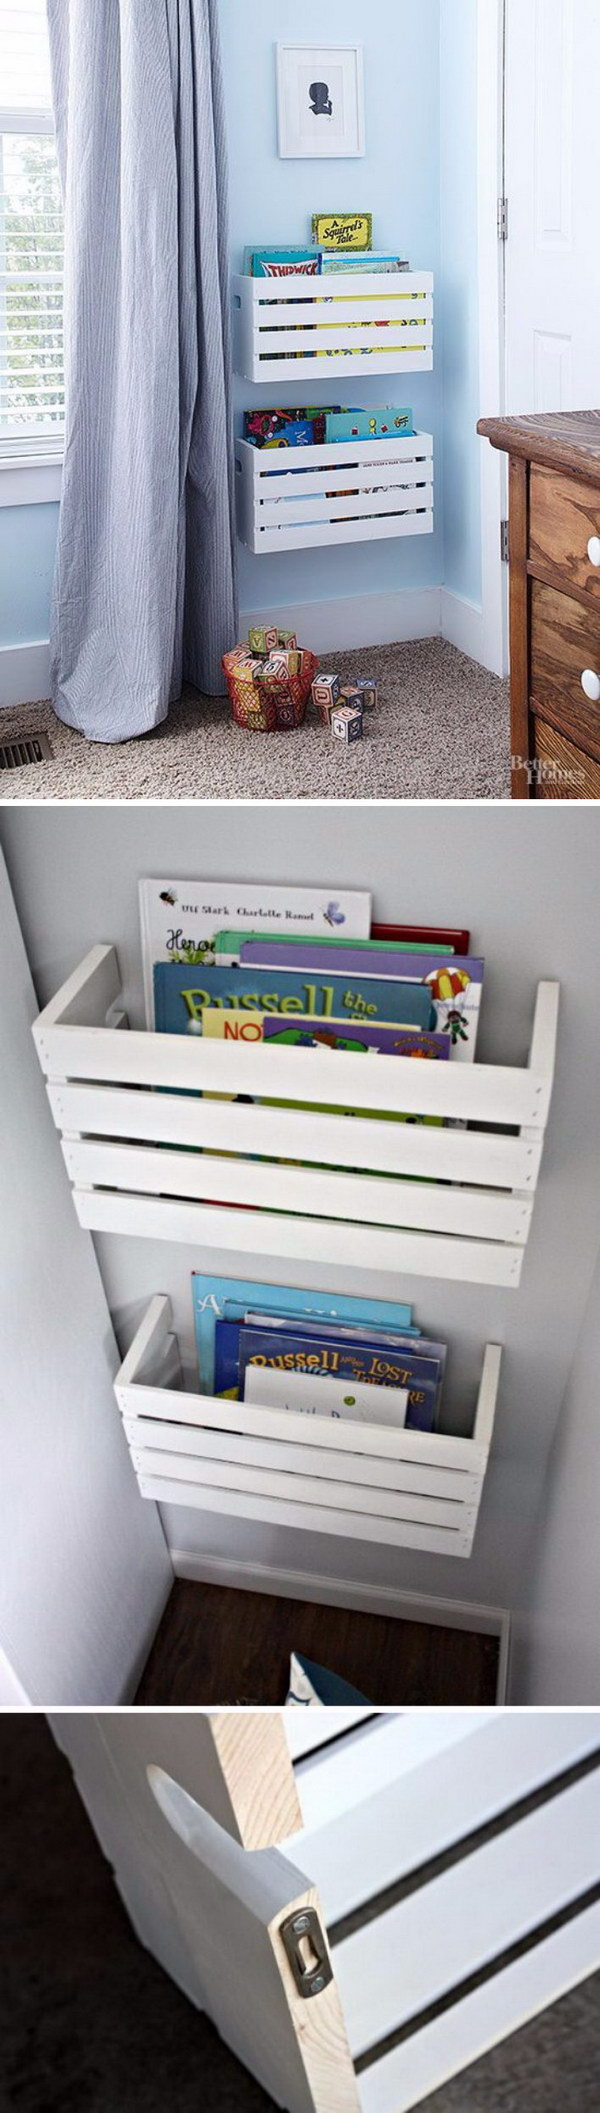 Make Great Crate Book Storage for Unused Wall Space.